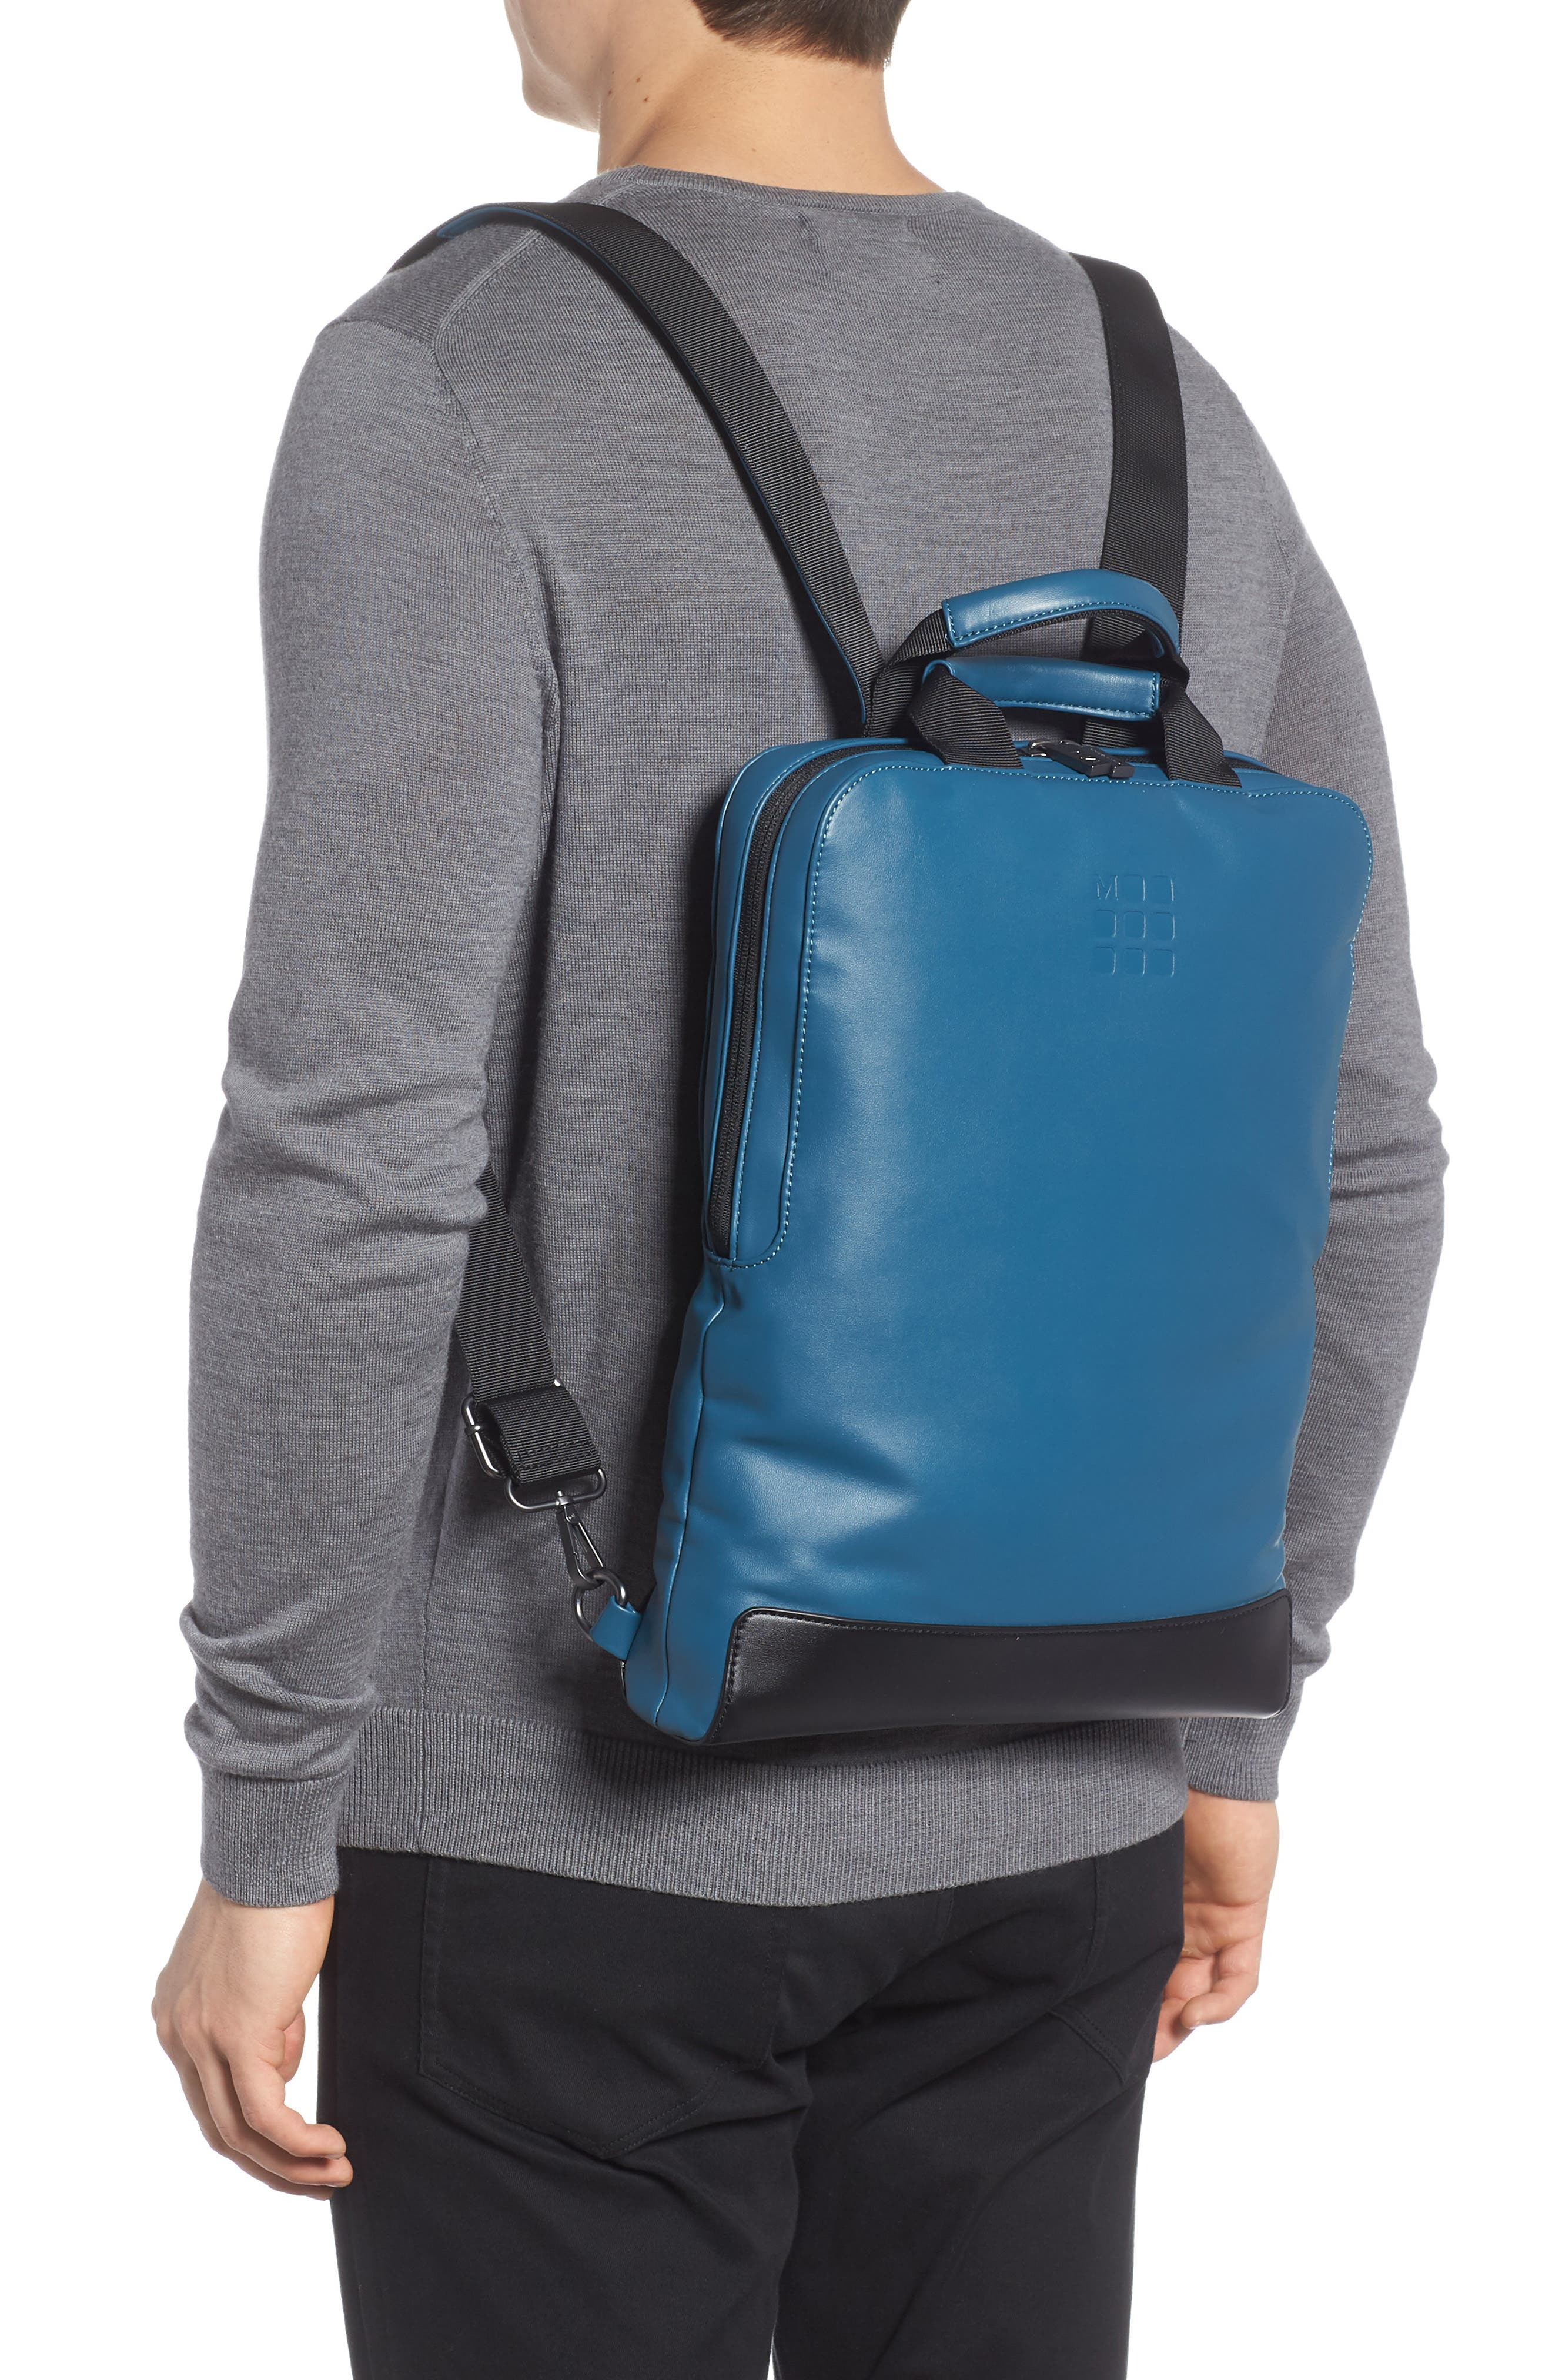 ID Vertical Device Bag,                             Alternate thumbnail 2, color,                             460